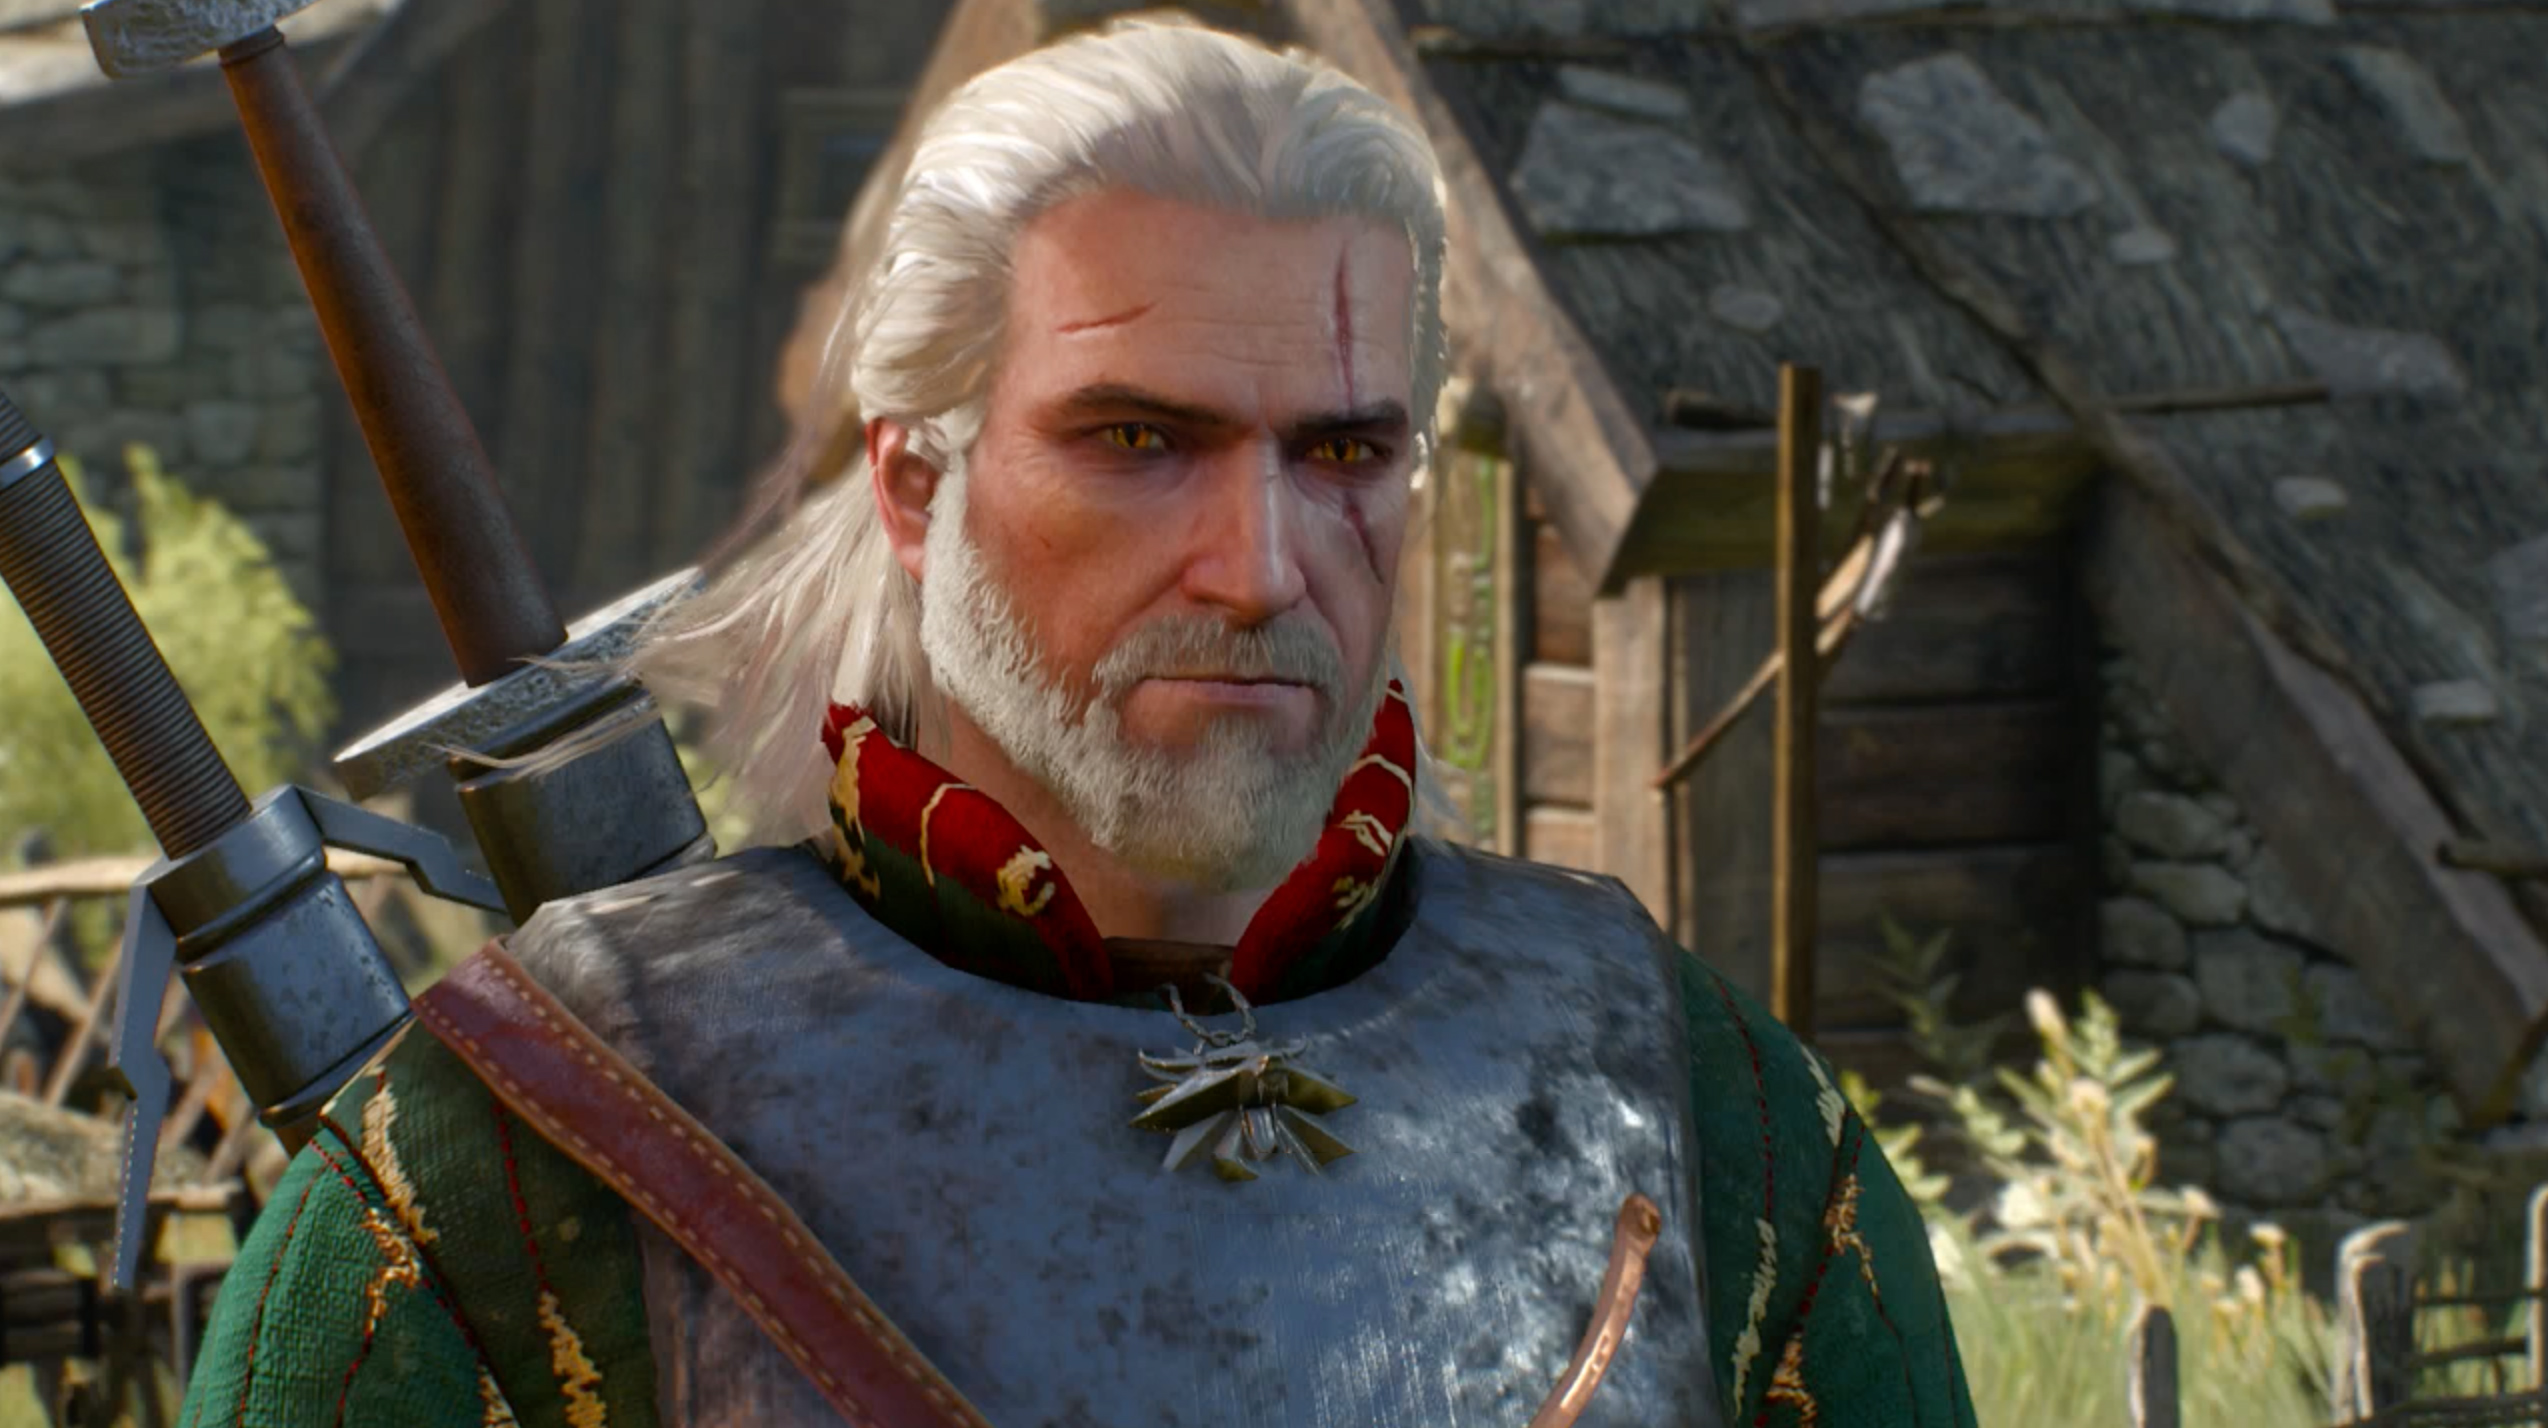 The Witcher 3 expansion's physical release delayed a day before launch (update)